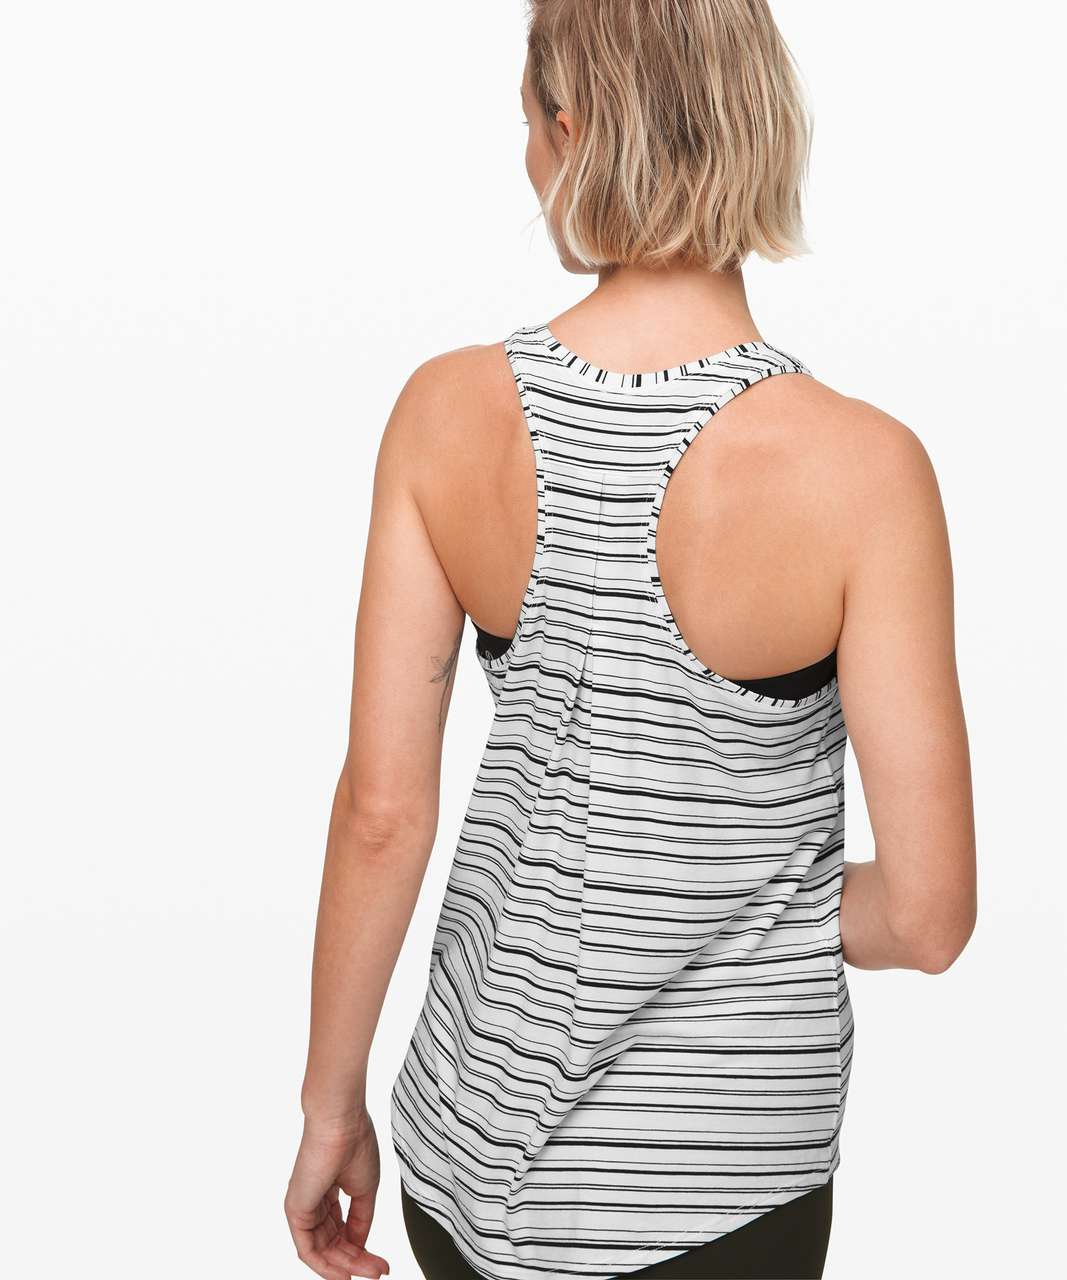 Lululemon Love Tank *Pleated - Cut Back Stripe White Black